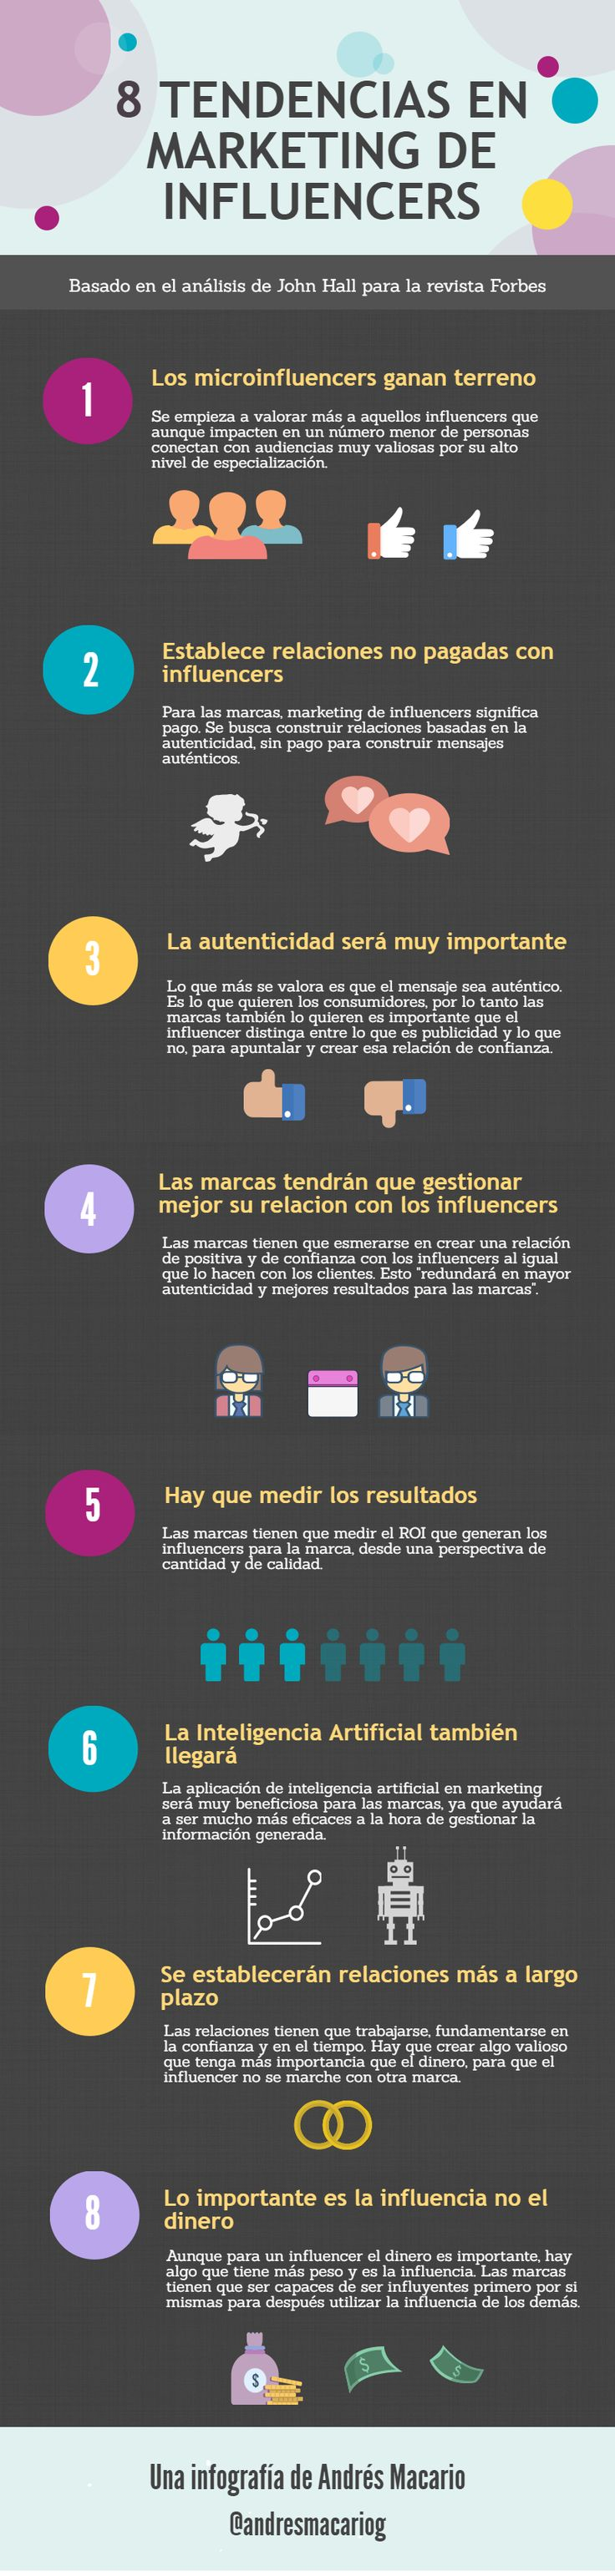 8 tendencias en marketing de influencers #infografia